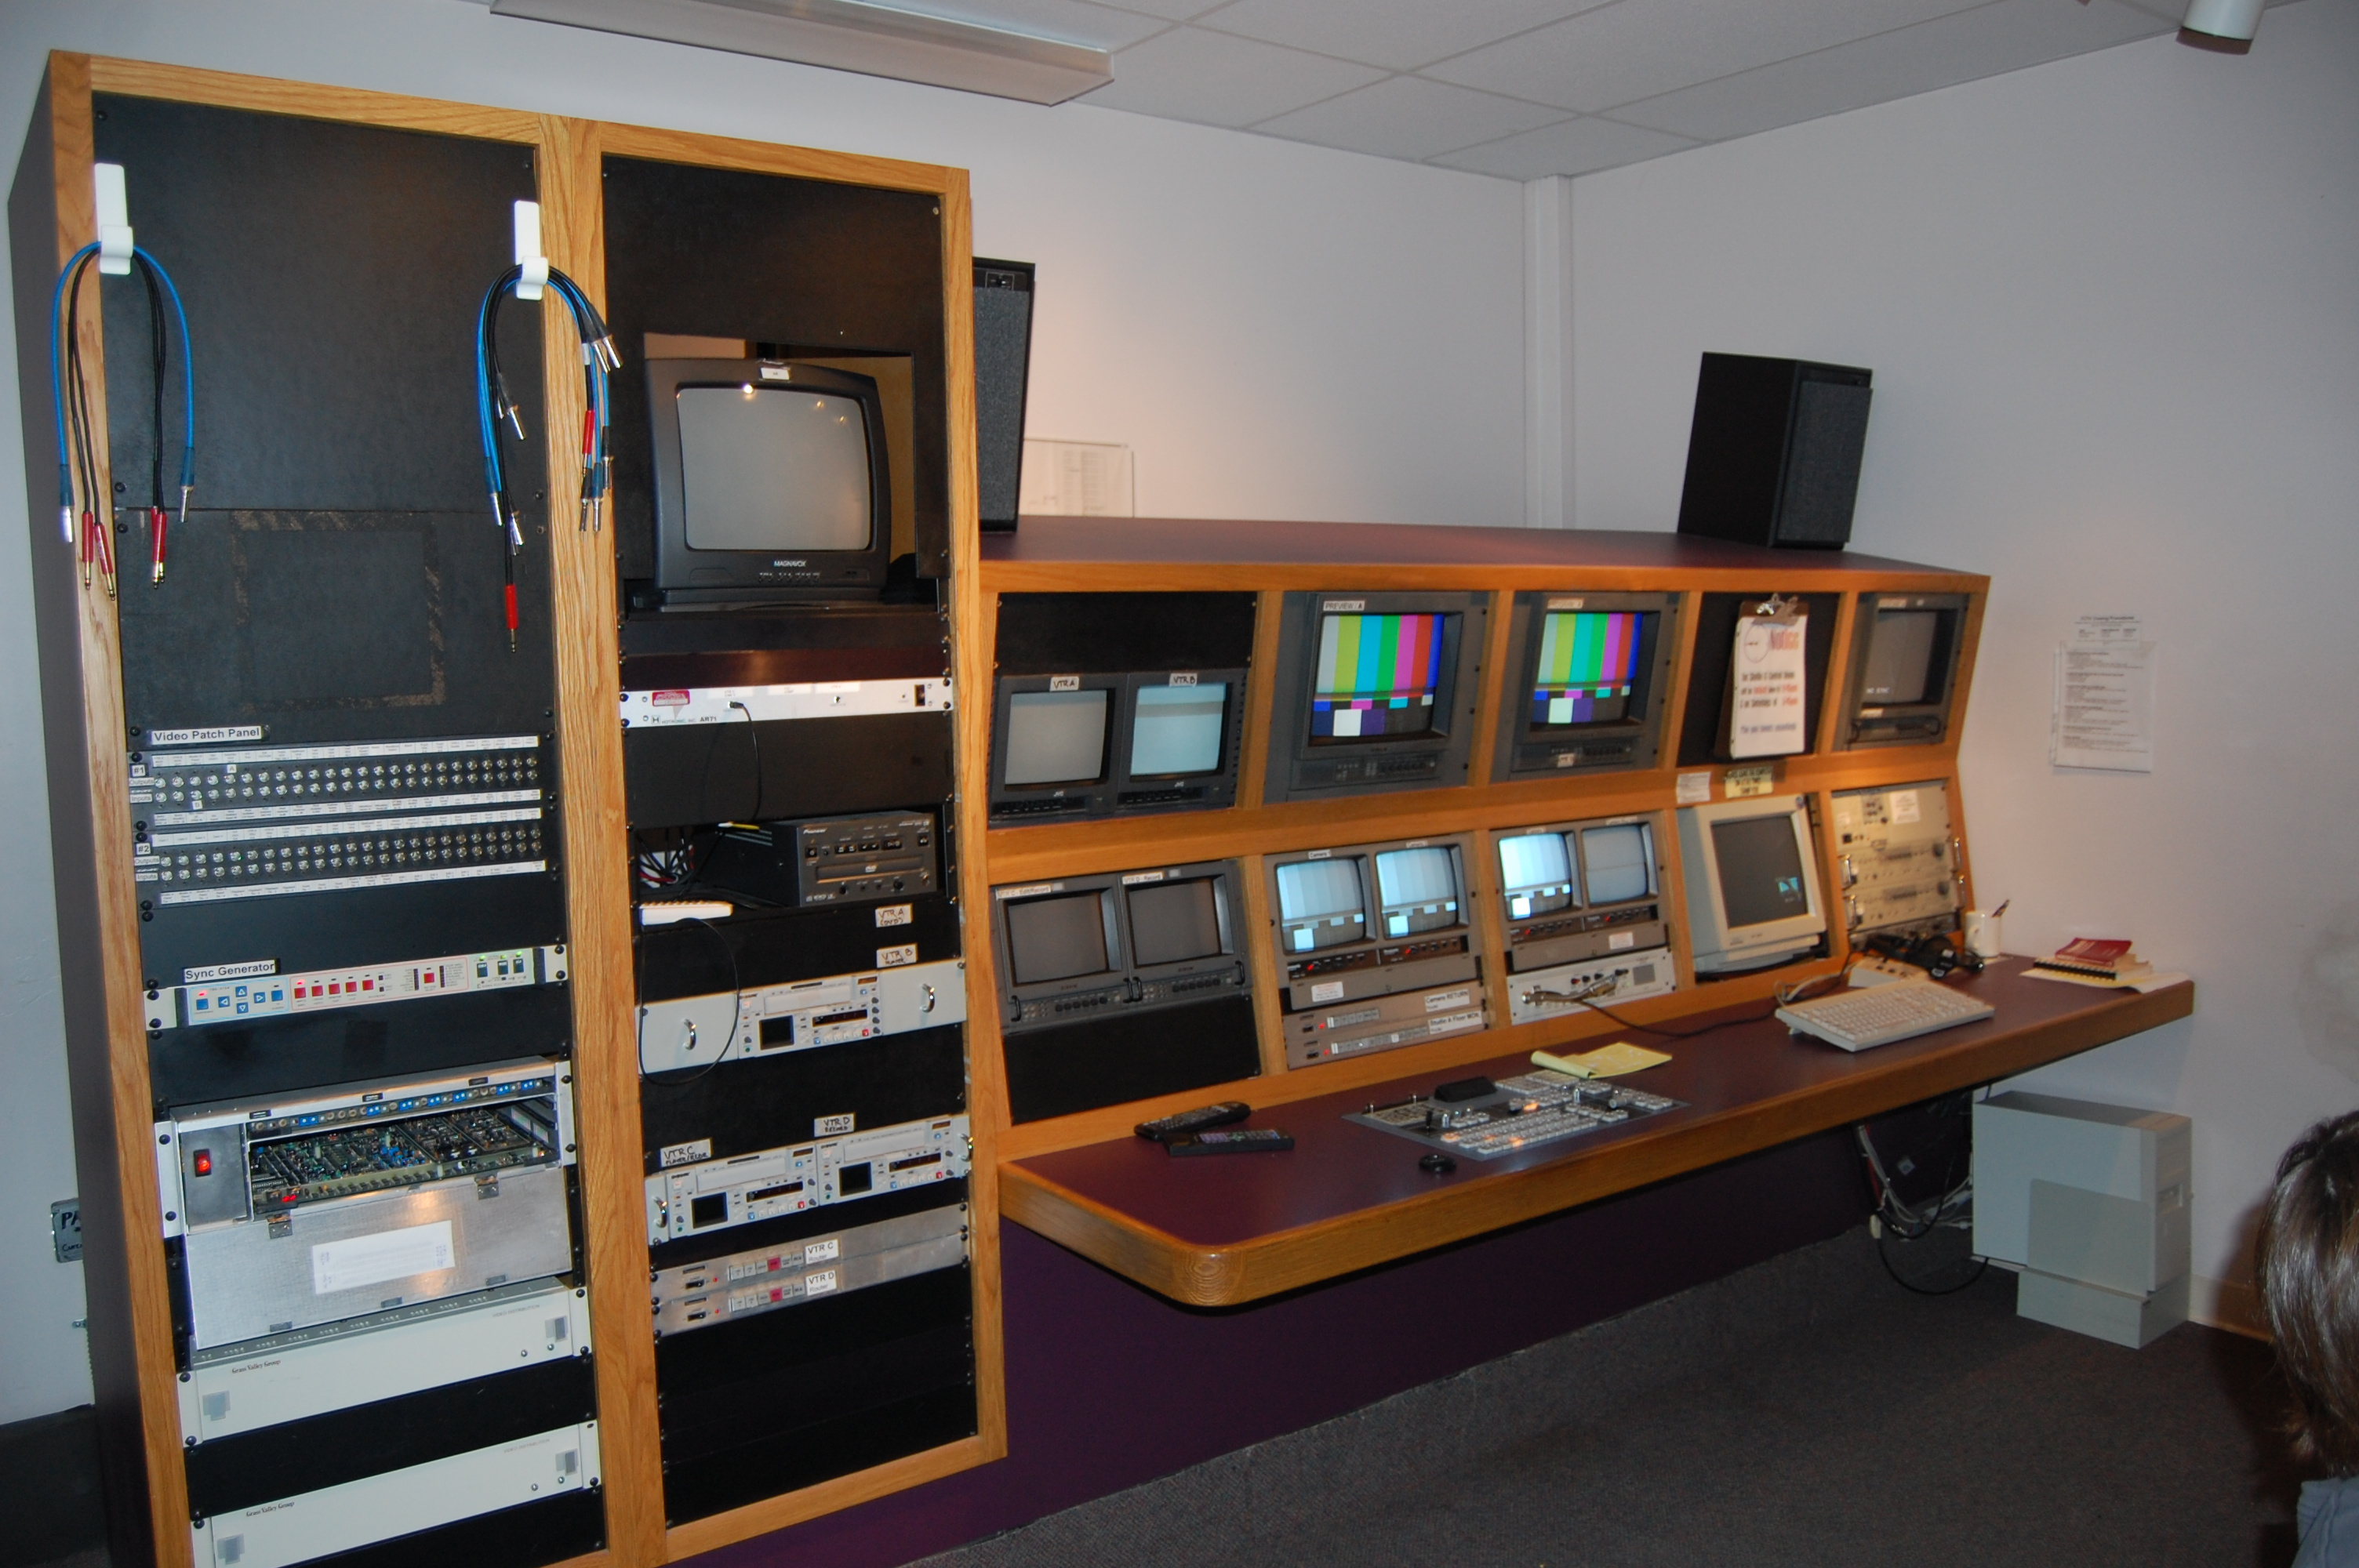 File:TV Station Control Room.JPG - Wikimedia Commons